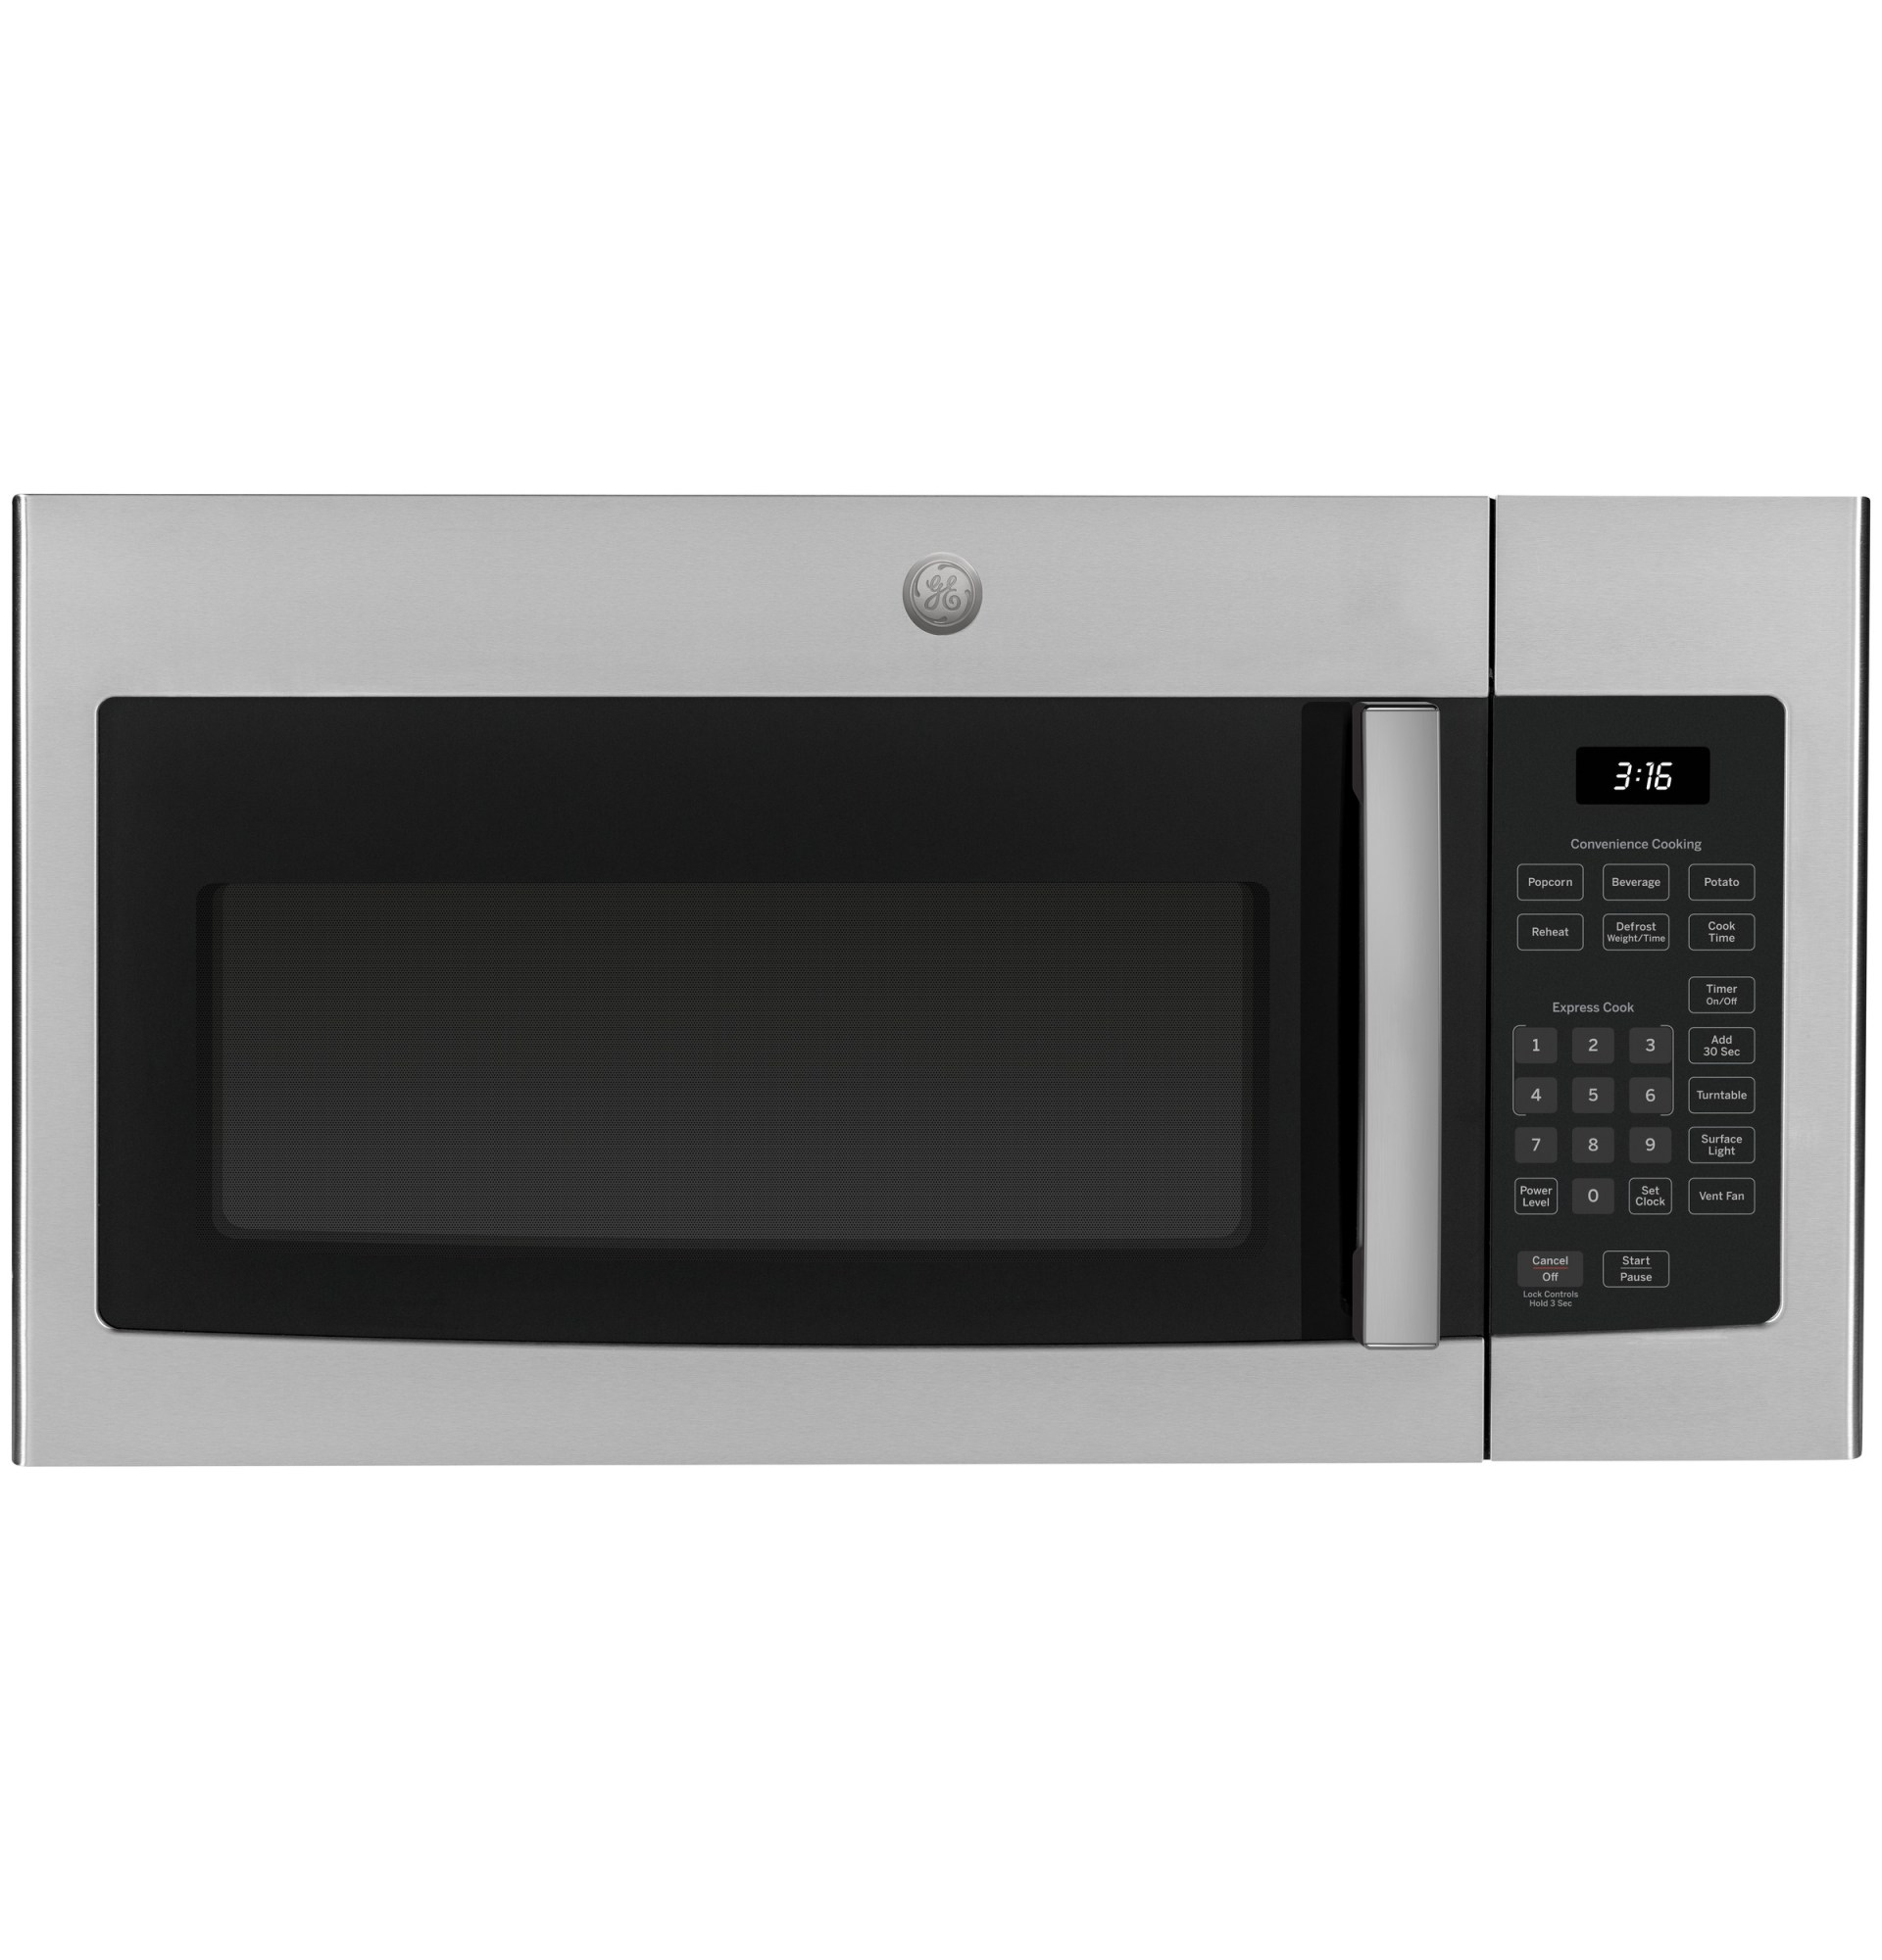 https www costco com ge 1 6 cu ft over the range microwave oven with cooktop lighting and 300 cfm exhaust fan product 100681438 html